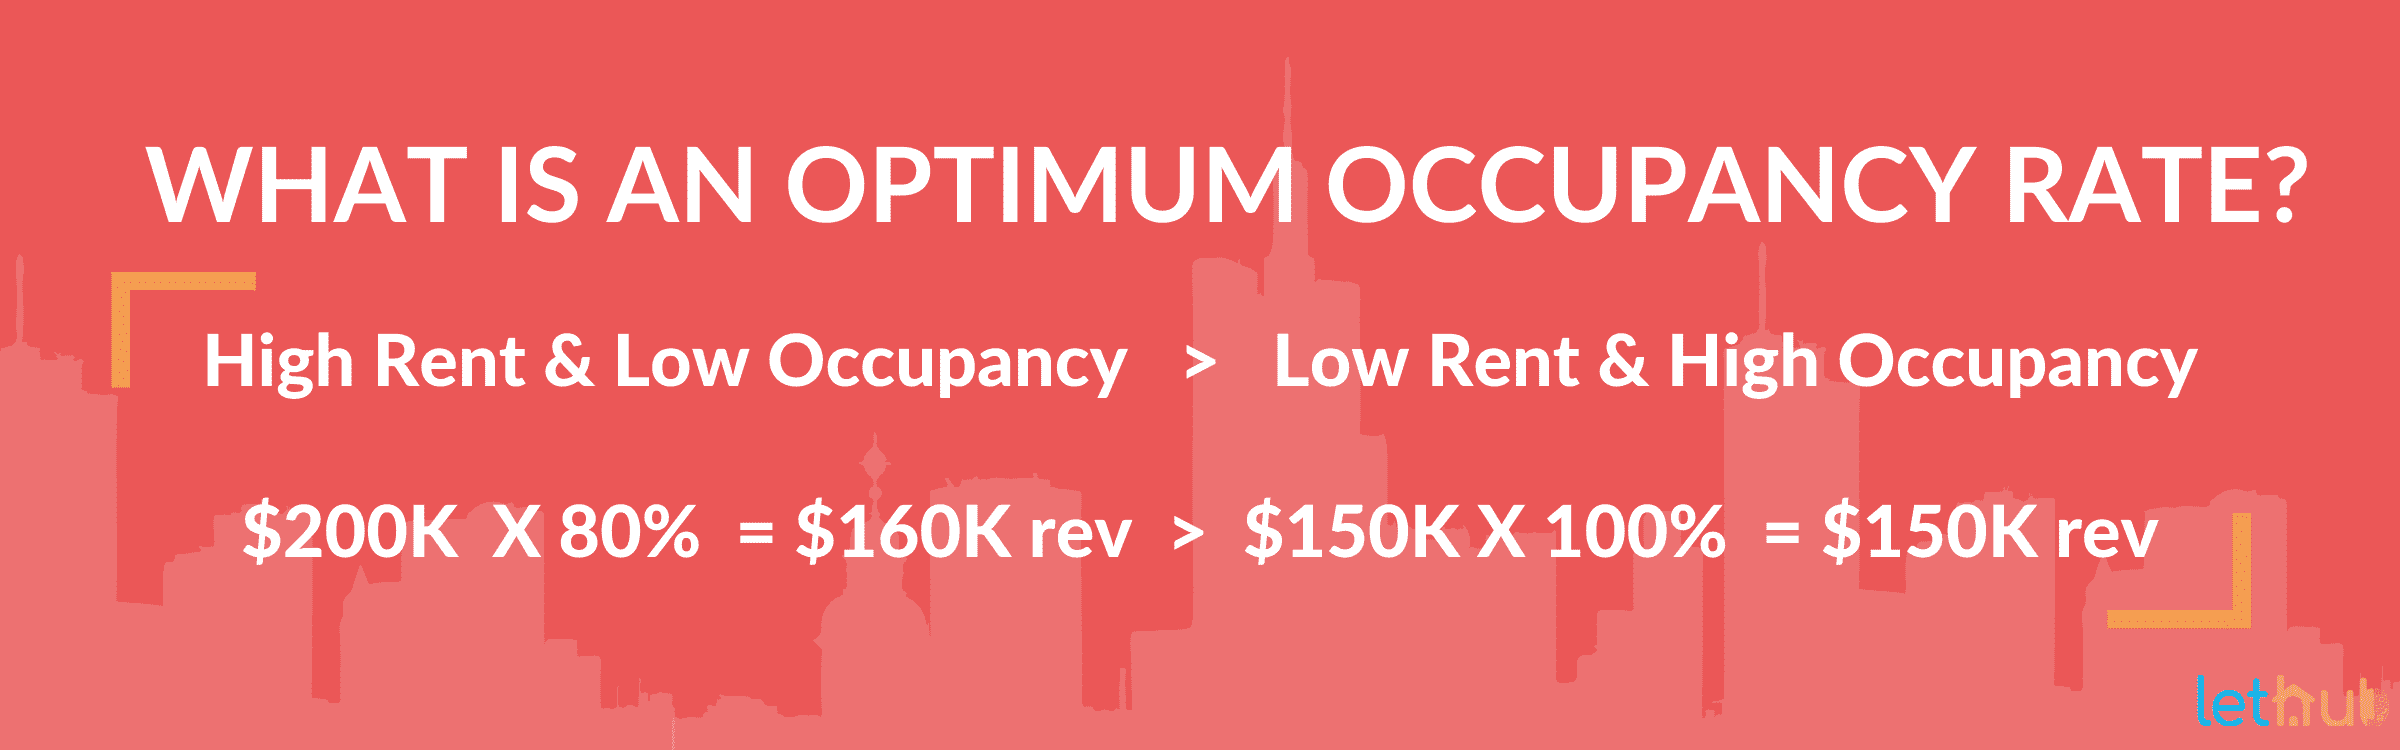 Optimum Rental Occupancy Rate Explanation